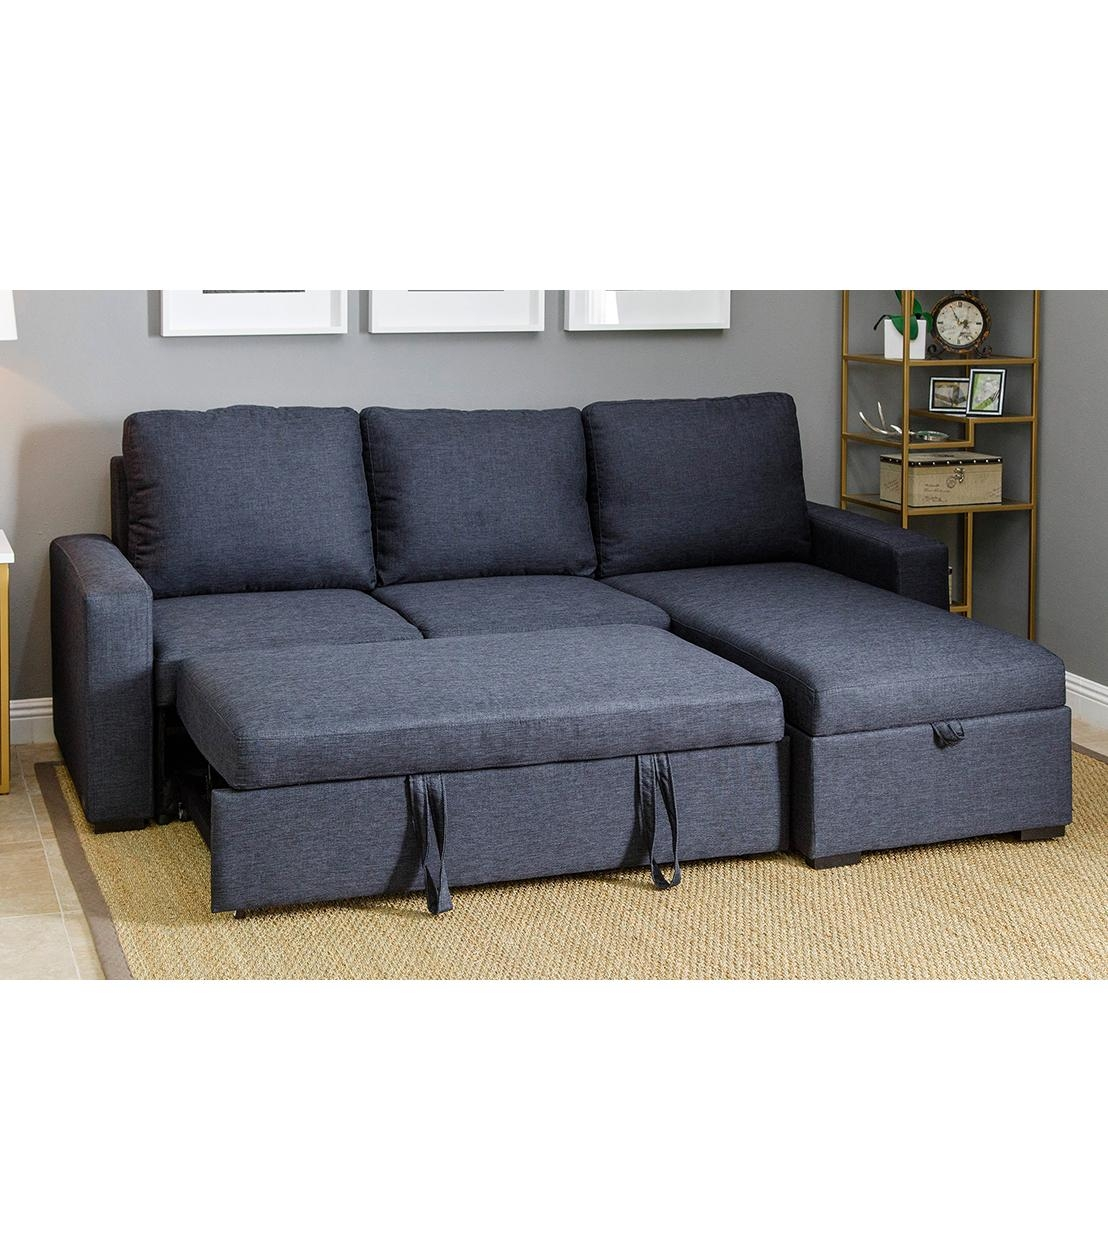 Sectionals For Abbyson Living Sectional Sofas (Image 14 of 20)